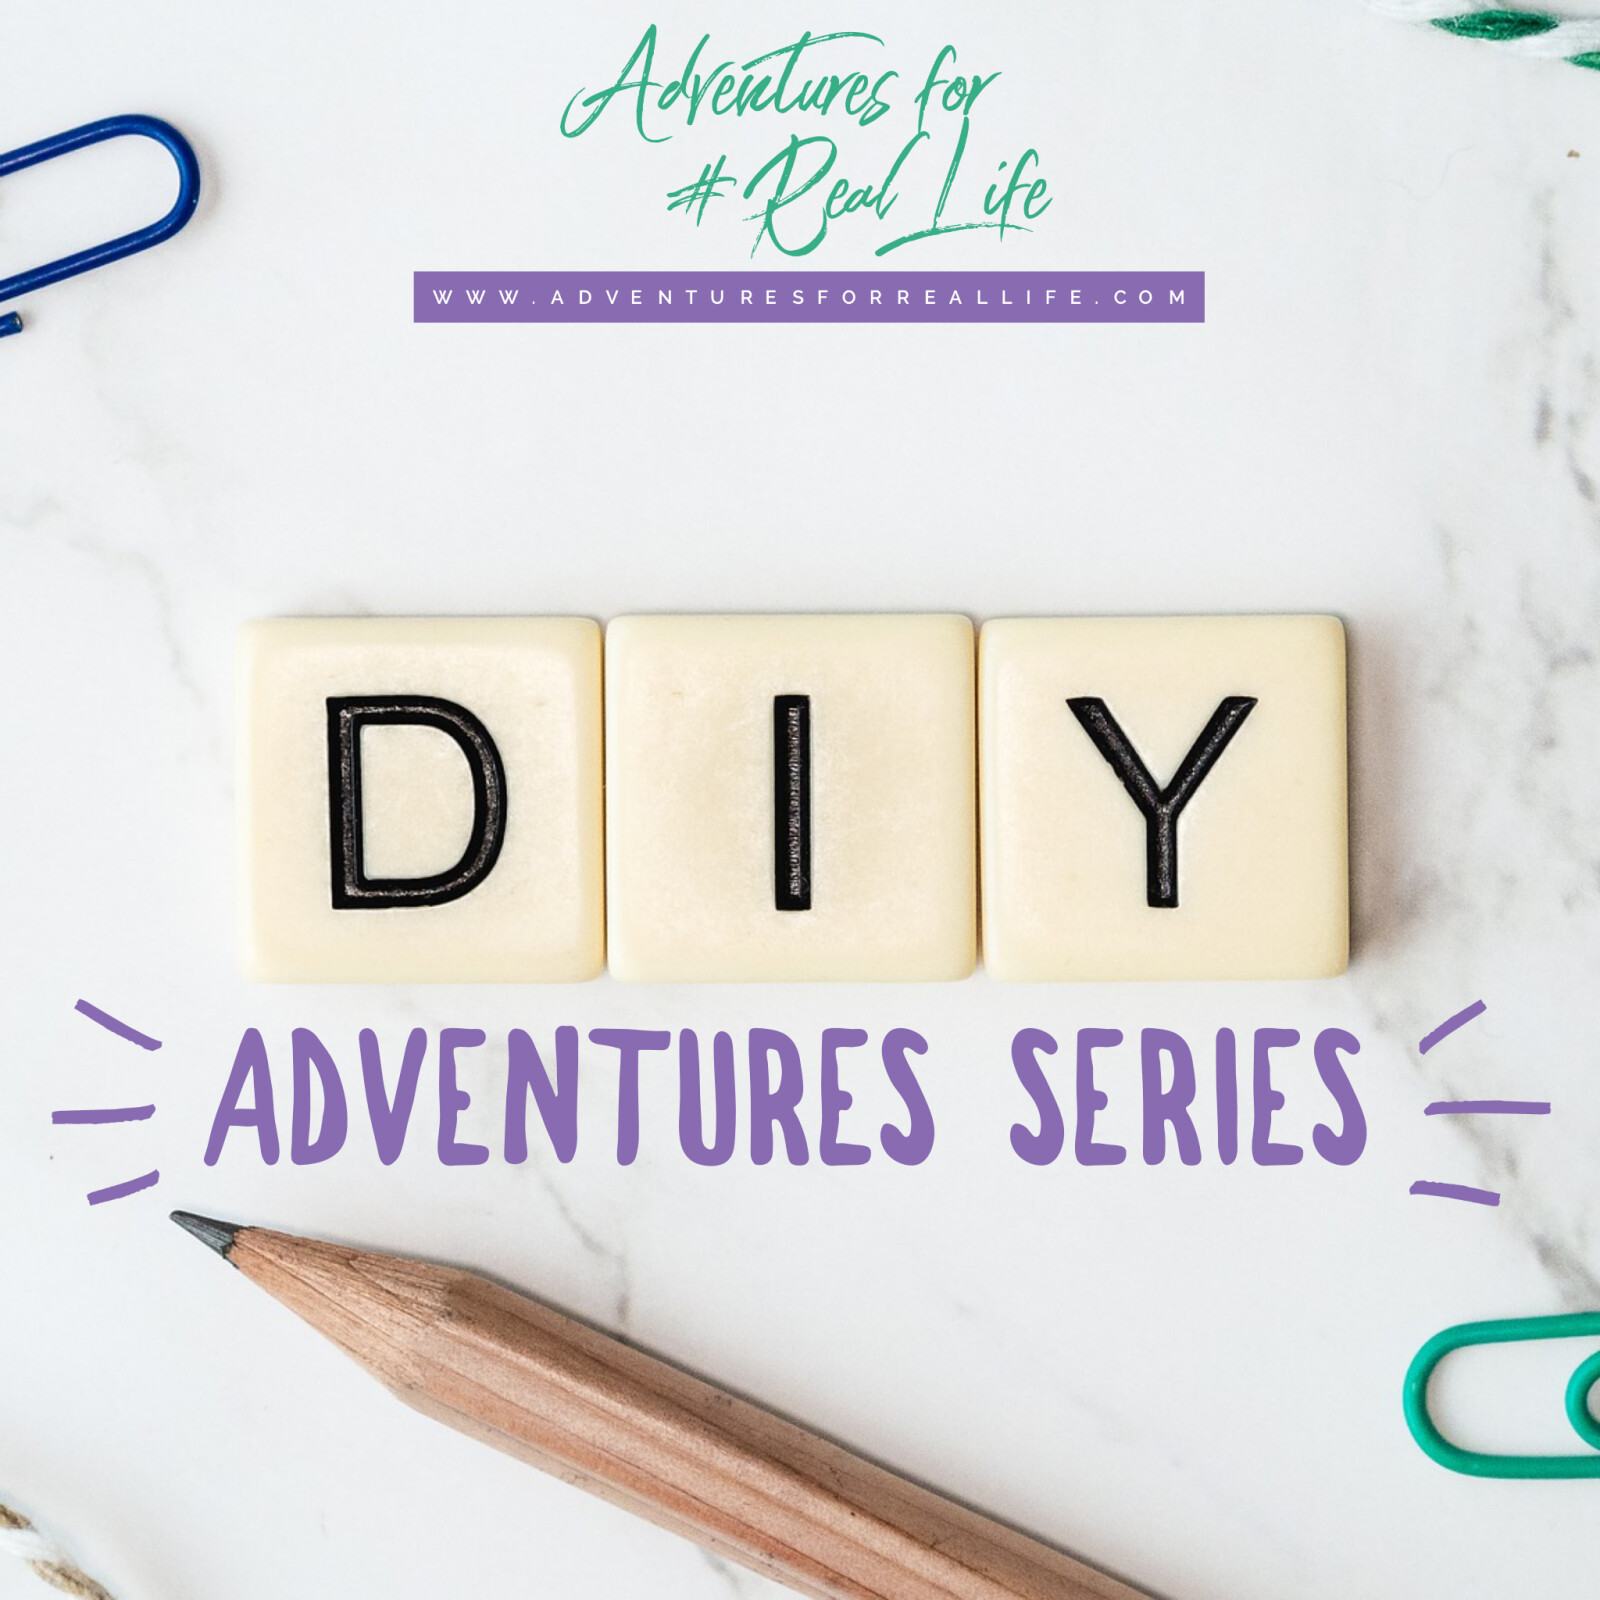 DIY Adventures Series!